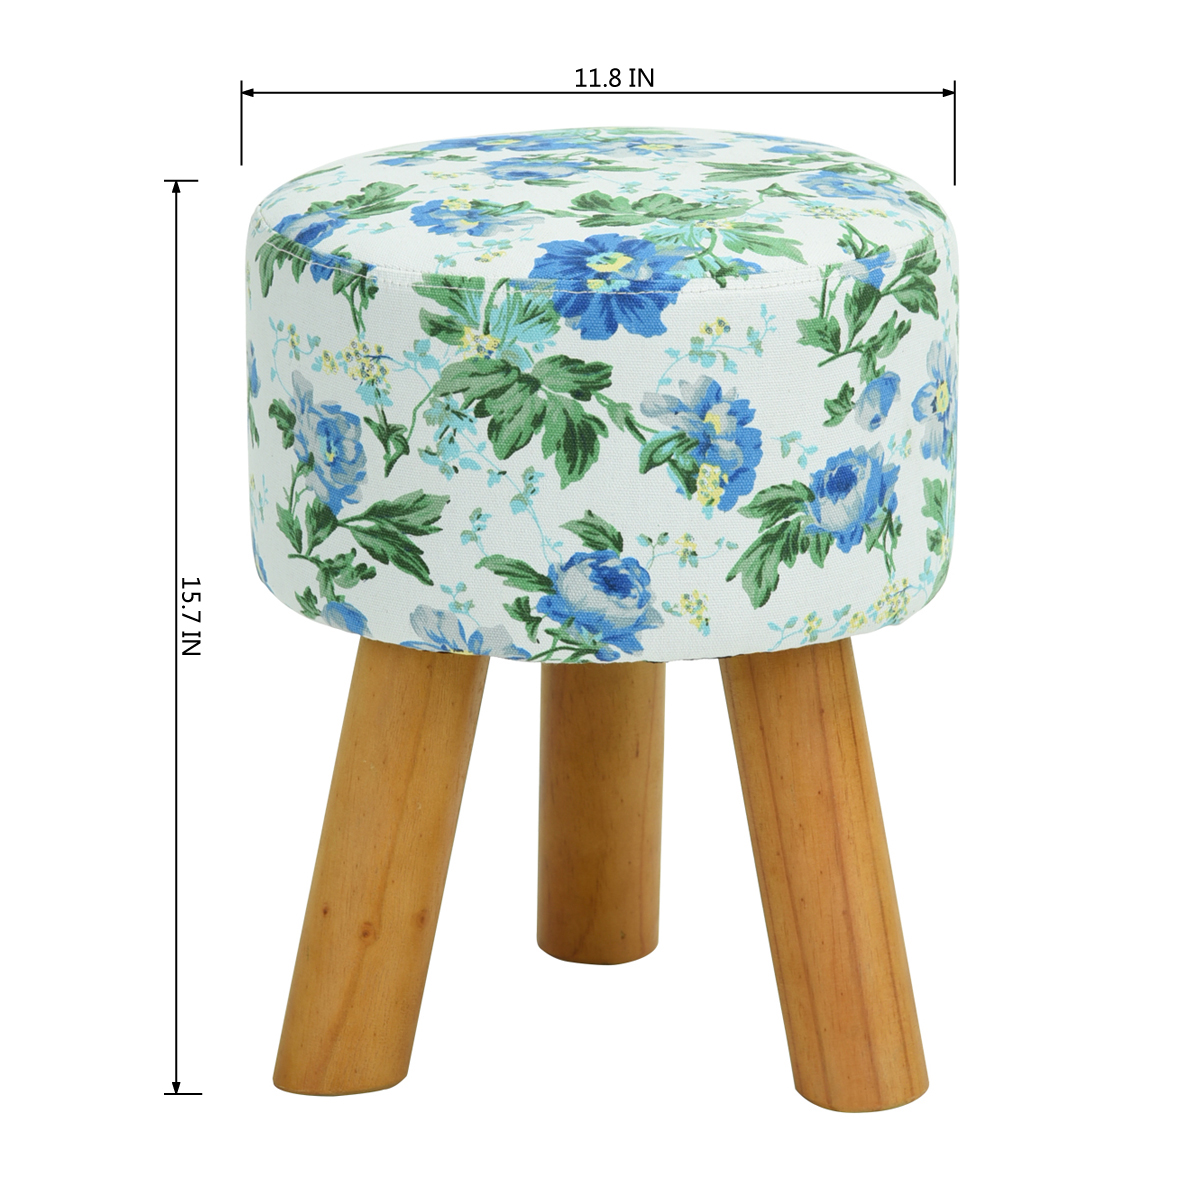 Fl Blue Round Ottoman Small Foot Stool With Wood Legs Rest Seat